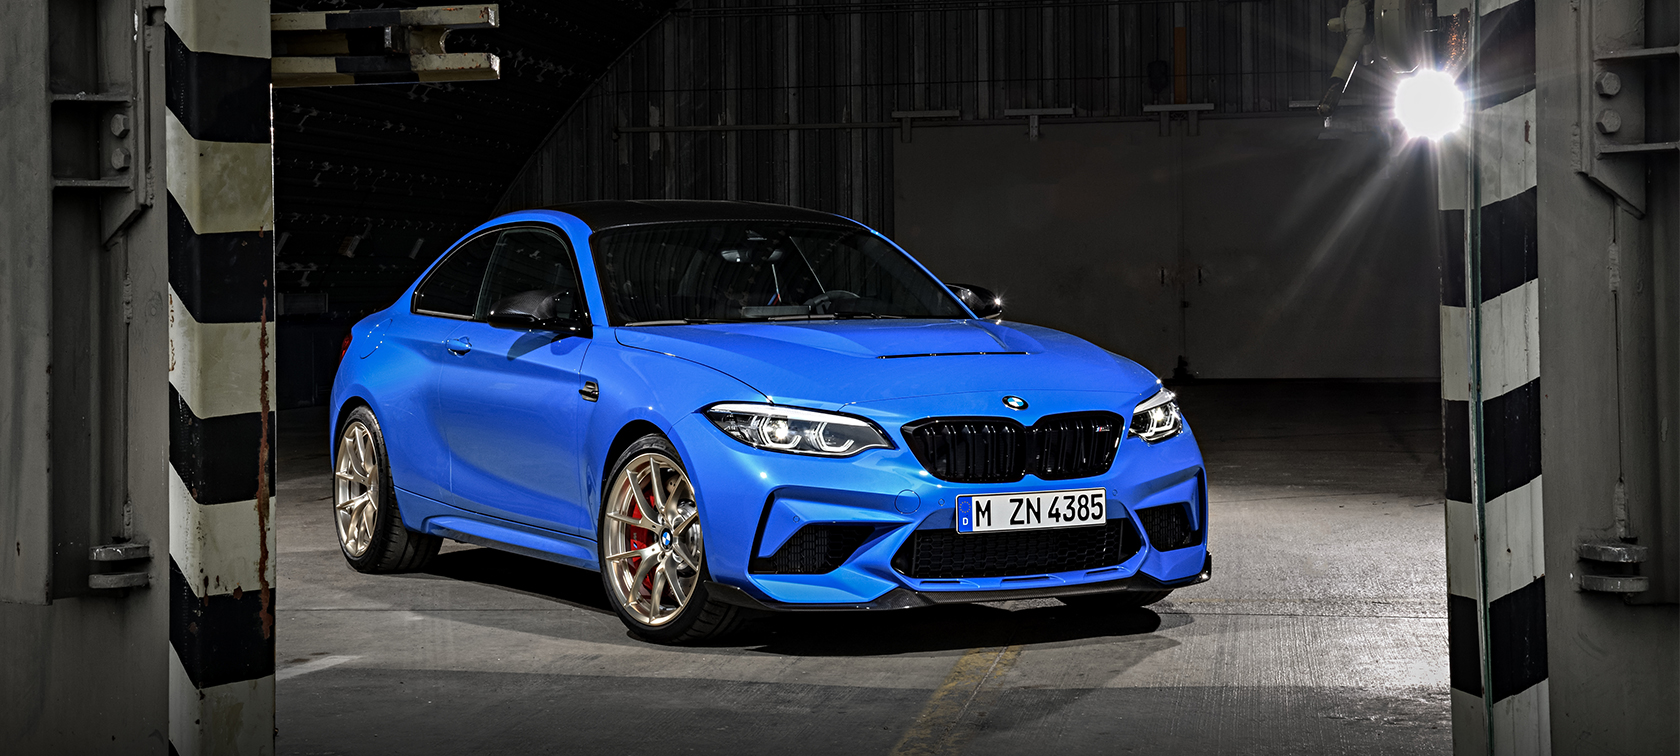 Oct Fascination The new BMW M2 CS